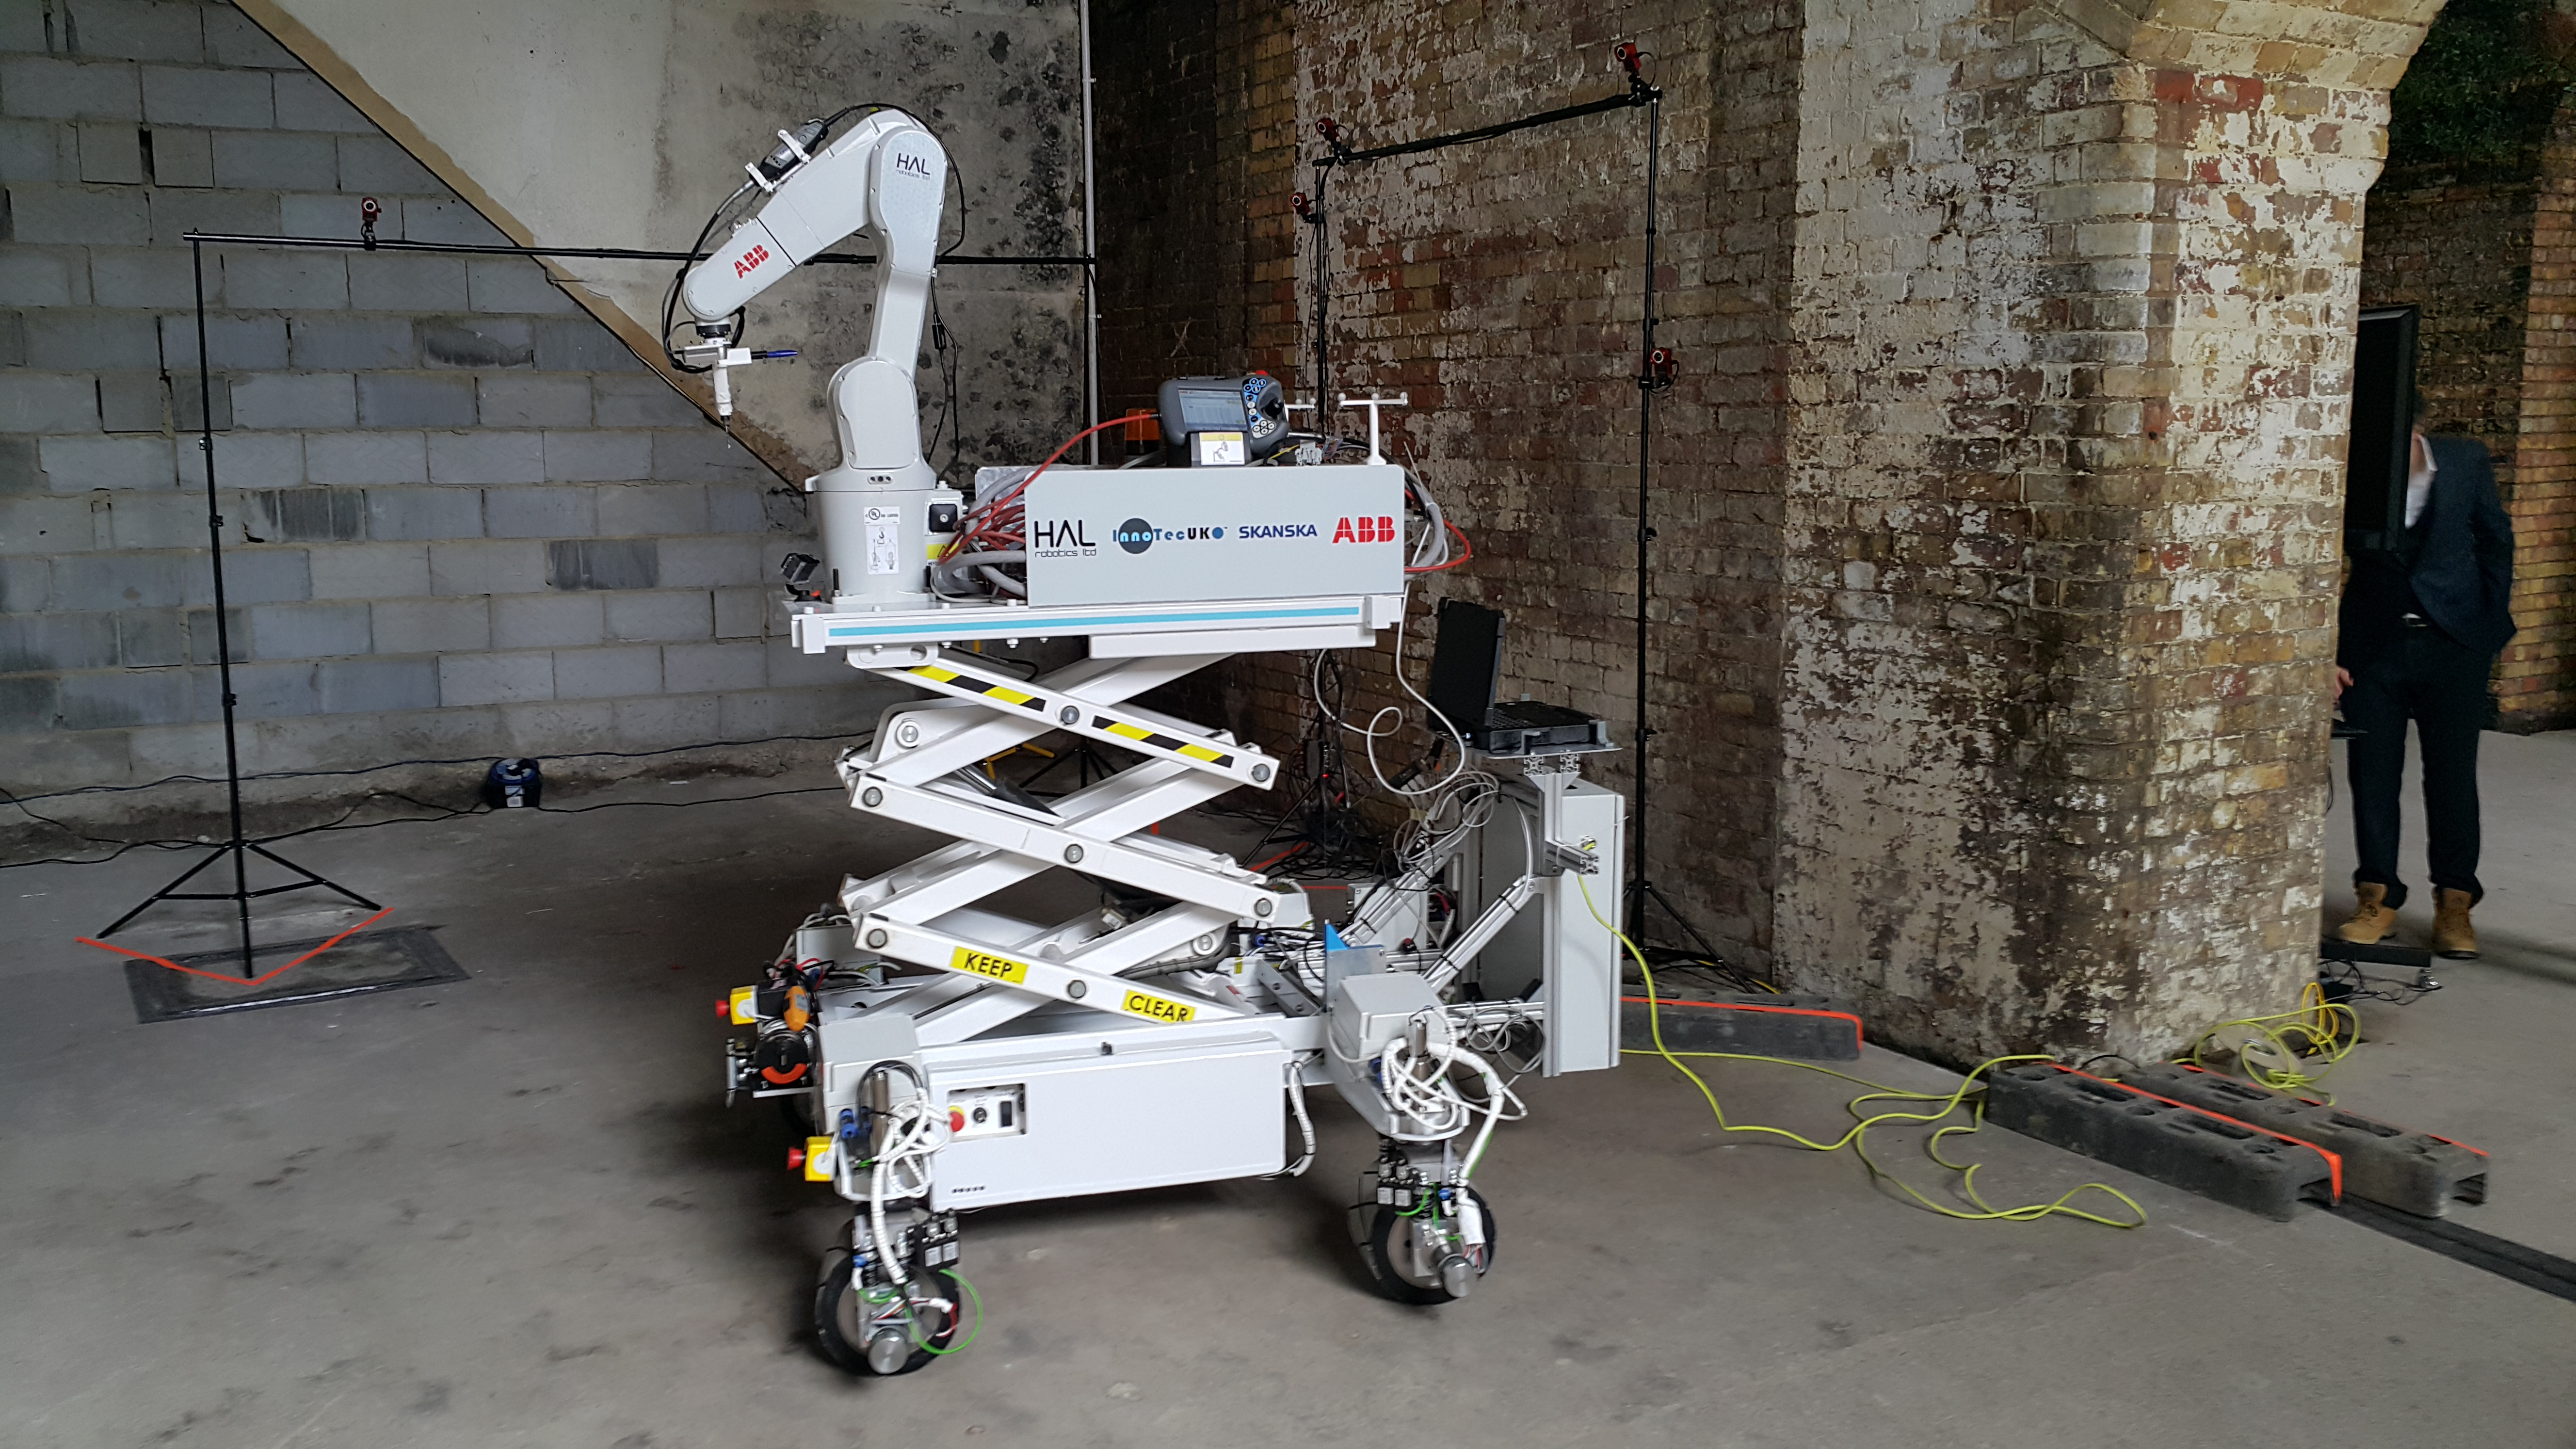 Project news: CAMERA – We are pleased to announce the successful demonstration of one of our collaborative projects CAMERA